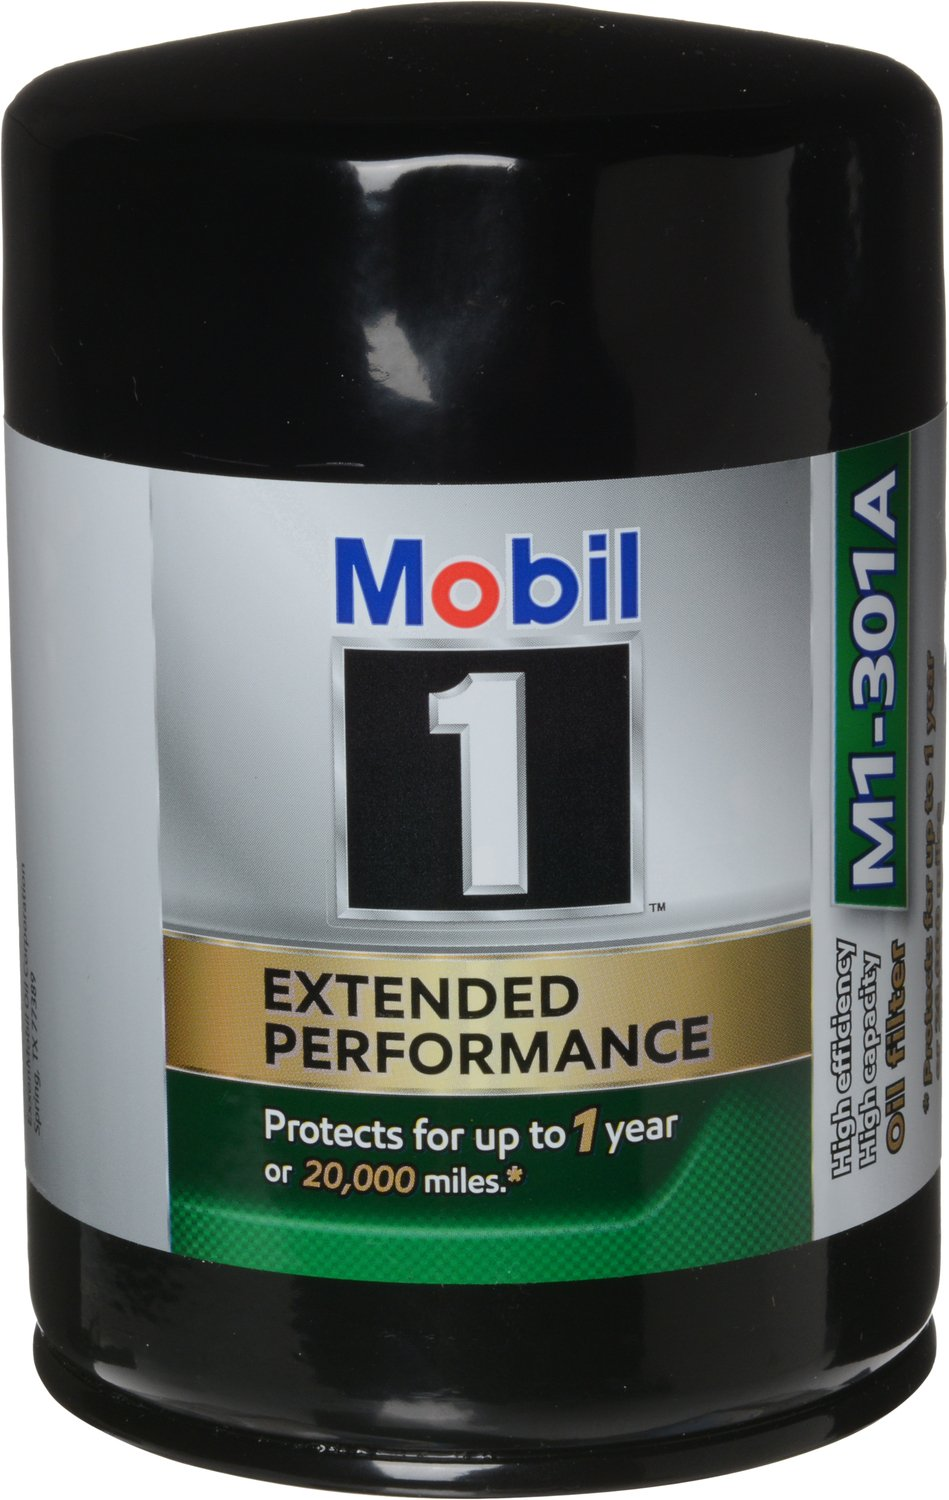 Mobil 1 M1-301A Extended Performance Oil Filter, 2 Pack, by Mobil 1